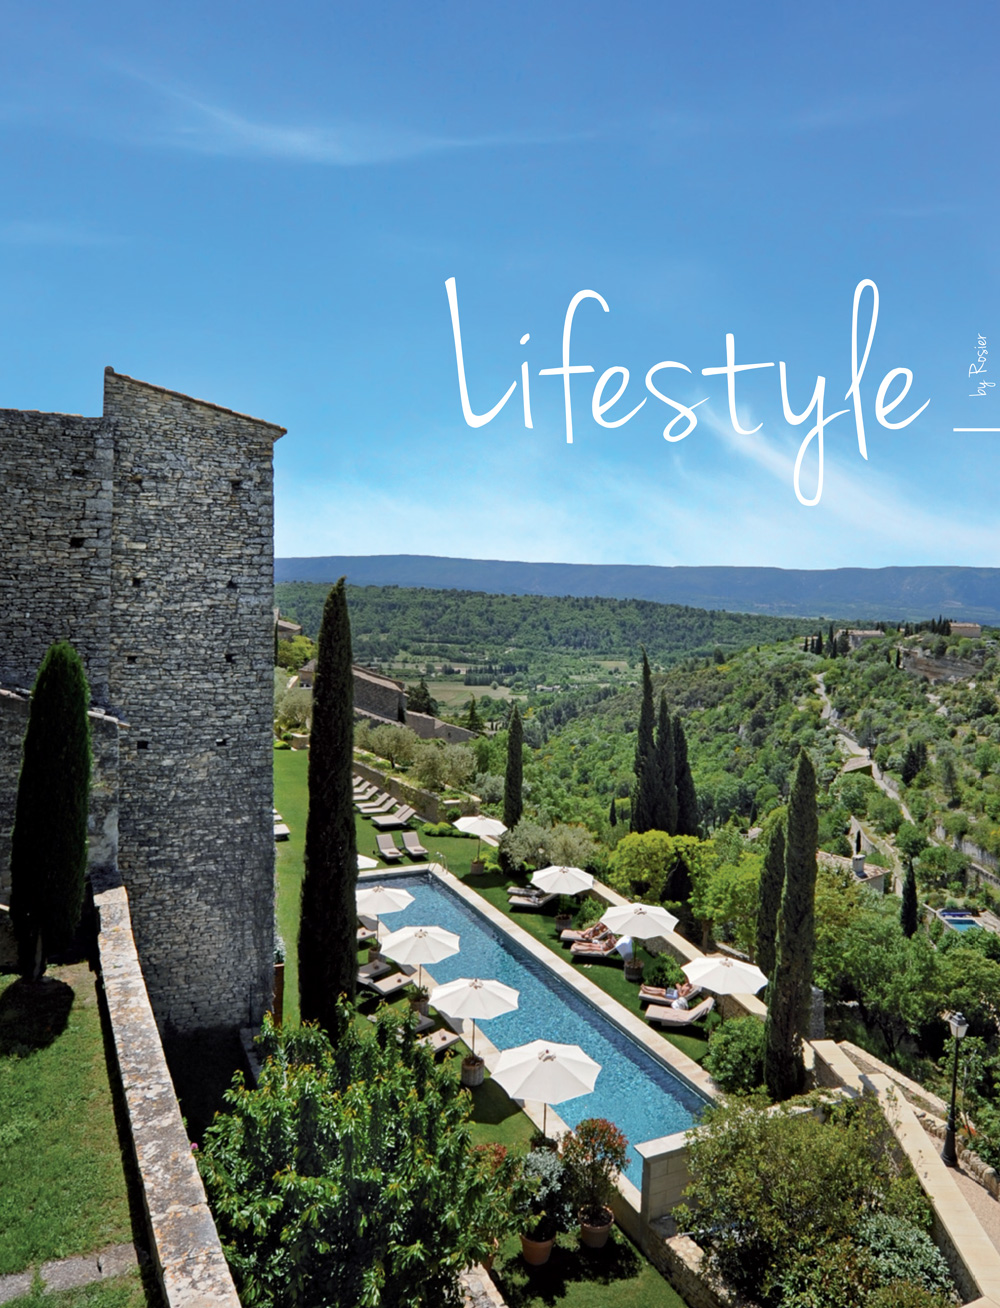 Lifestyle by Rosier, le magazine - édition 2017